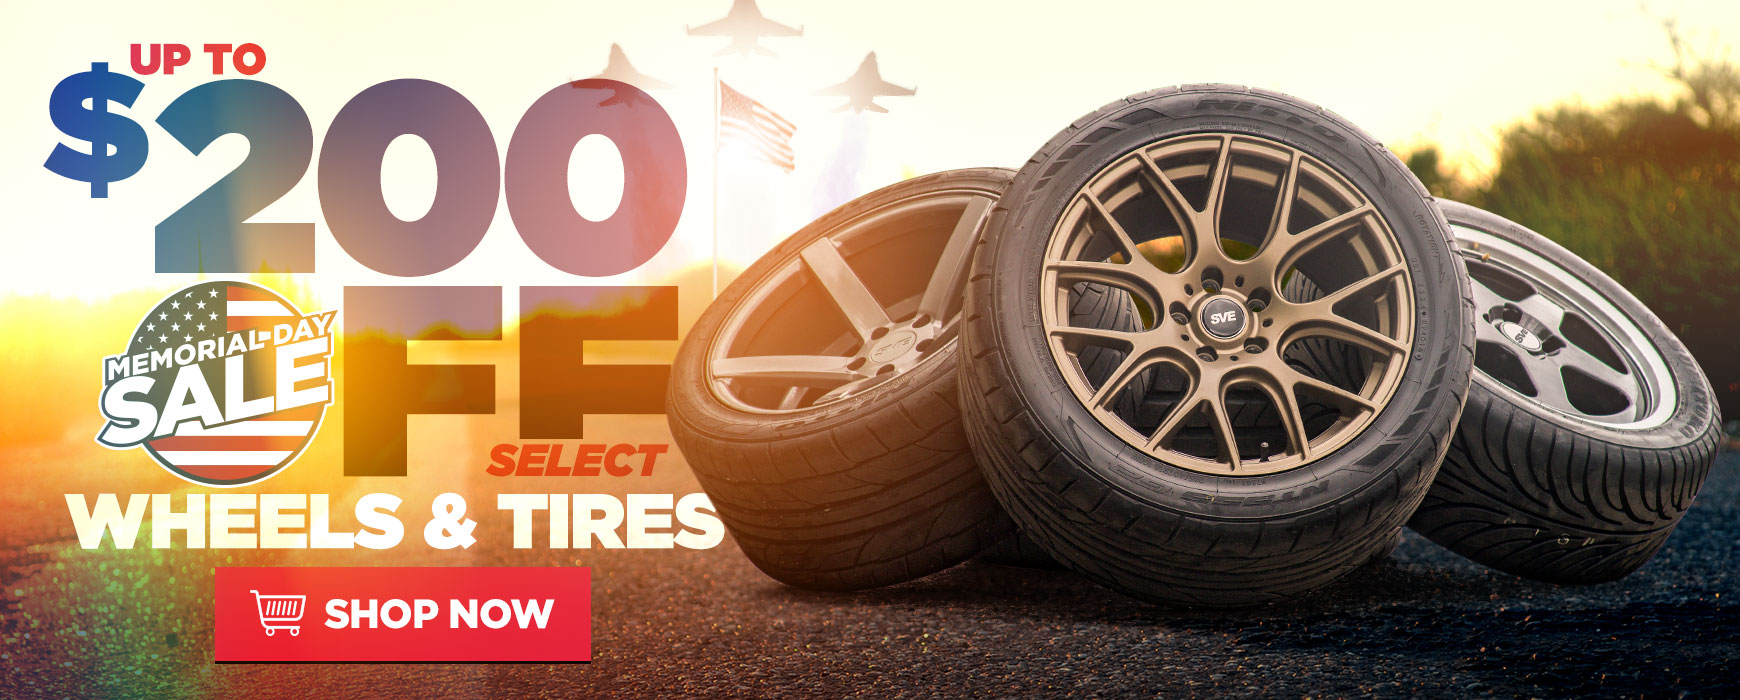 Mustang Wheels & Tires On Sale